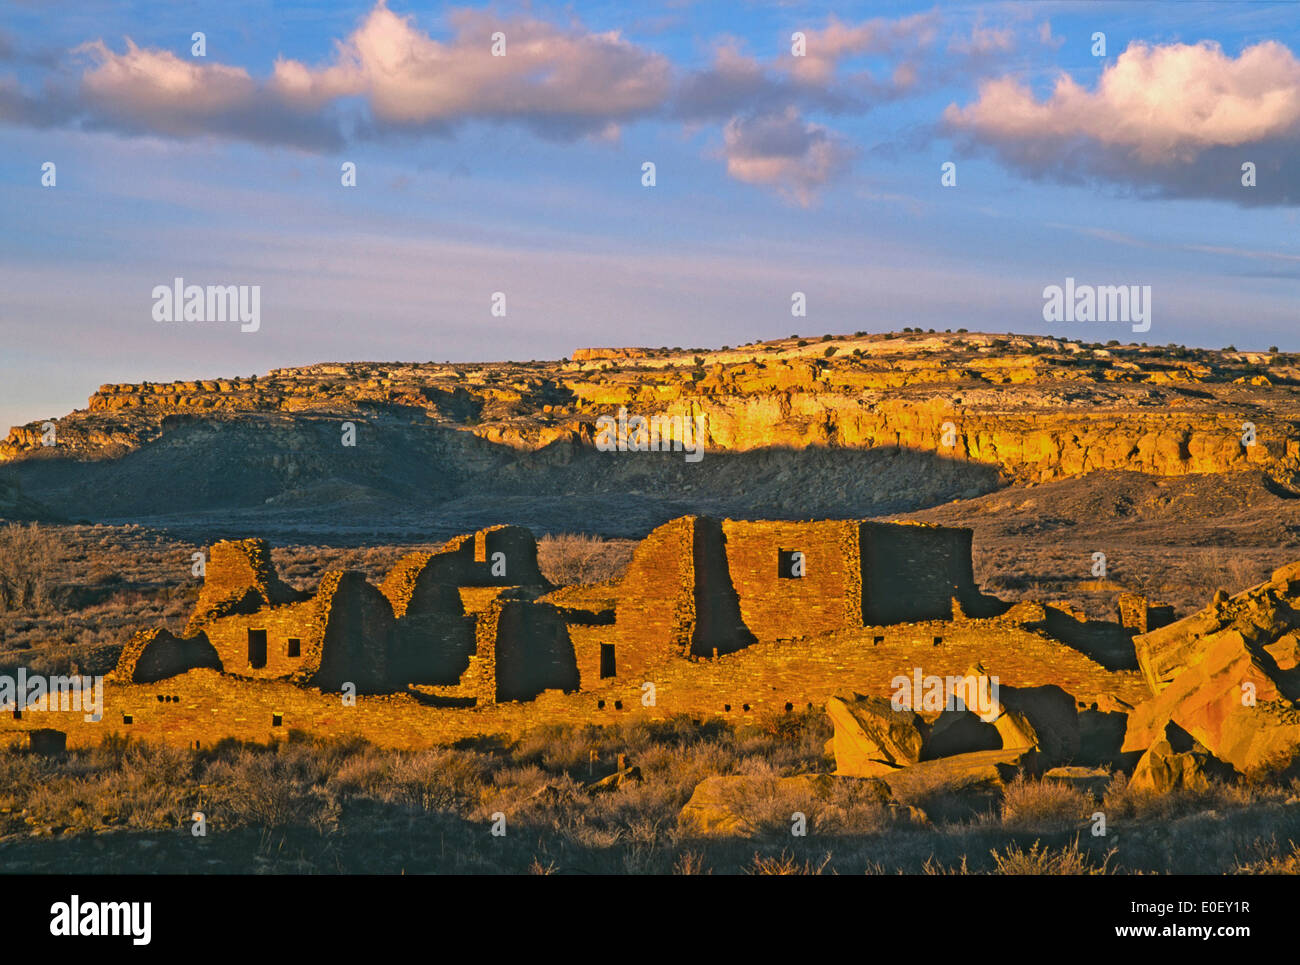 Pueblo Bonito and Chaco Canyon, Chaco Culture National Historic Park, New Mexico USA - Stock Image